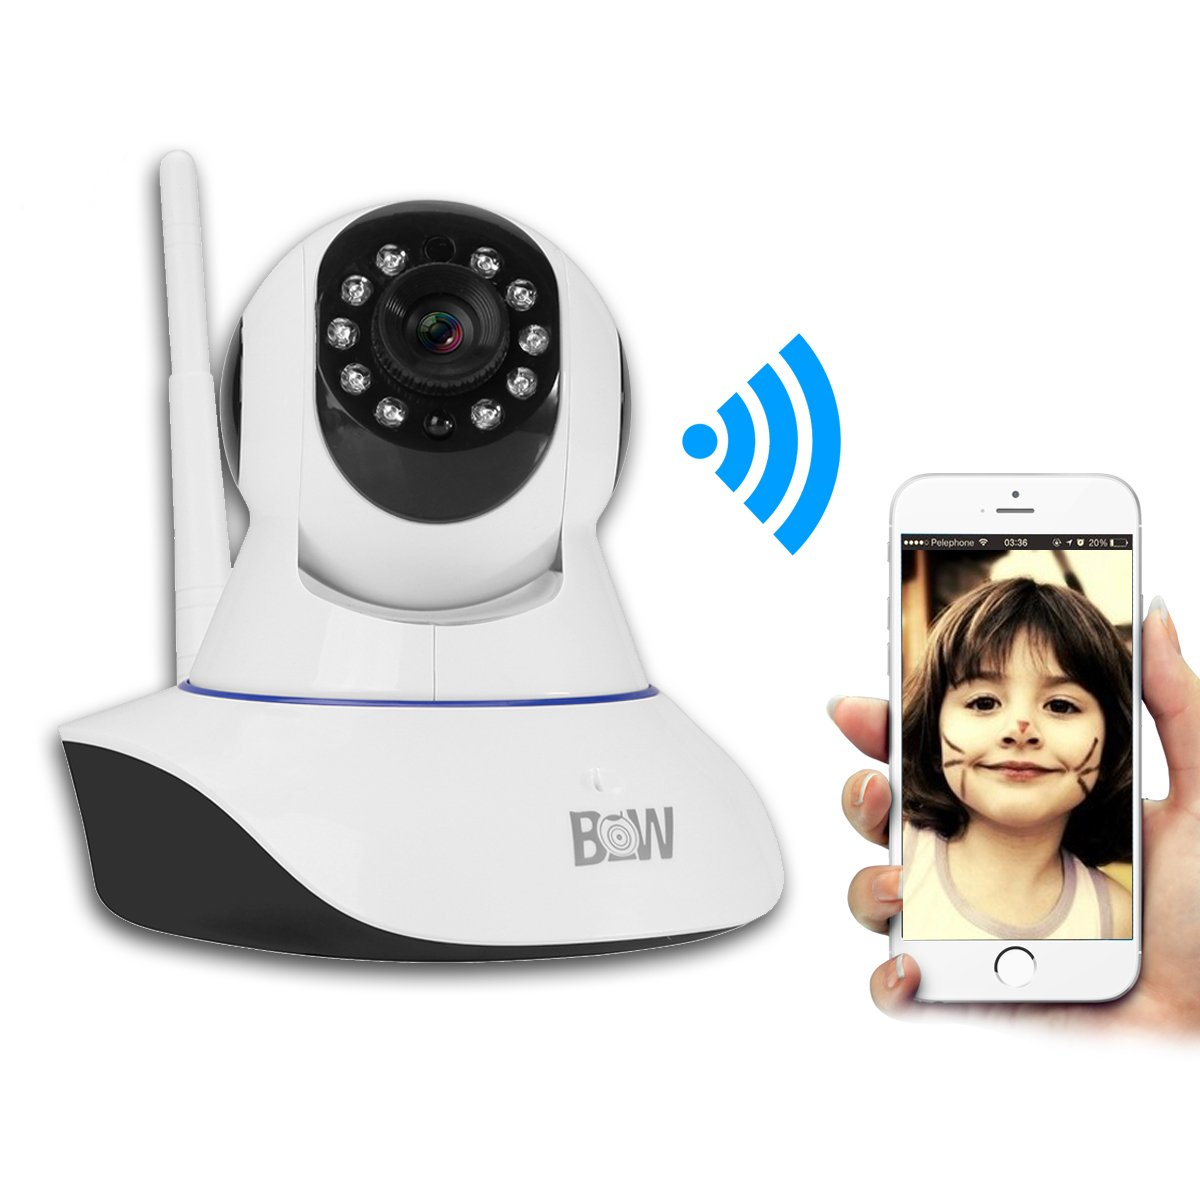 HD Wireless WiFi IP Camera Home Security Surveillance Camera Baby Pet Monitor Rotatable Alarming Security System with Night Vision